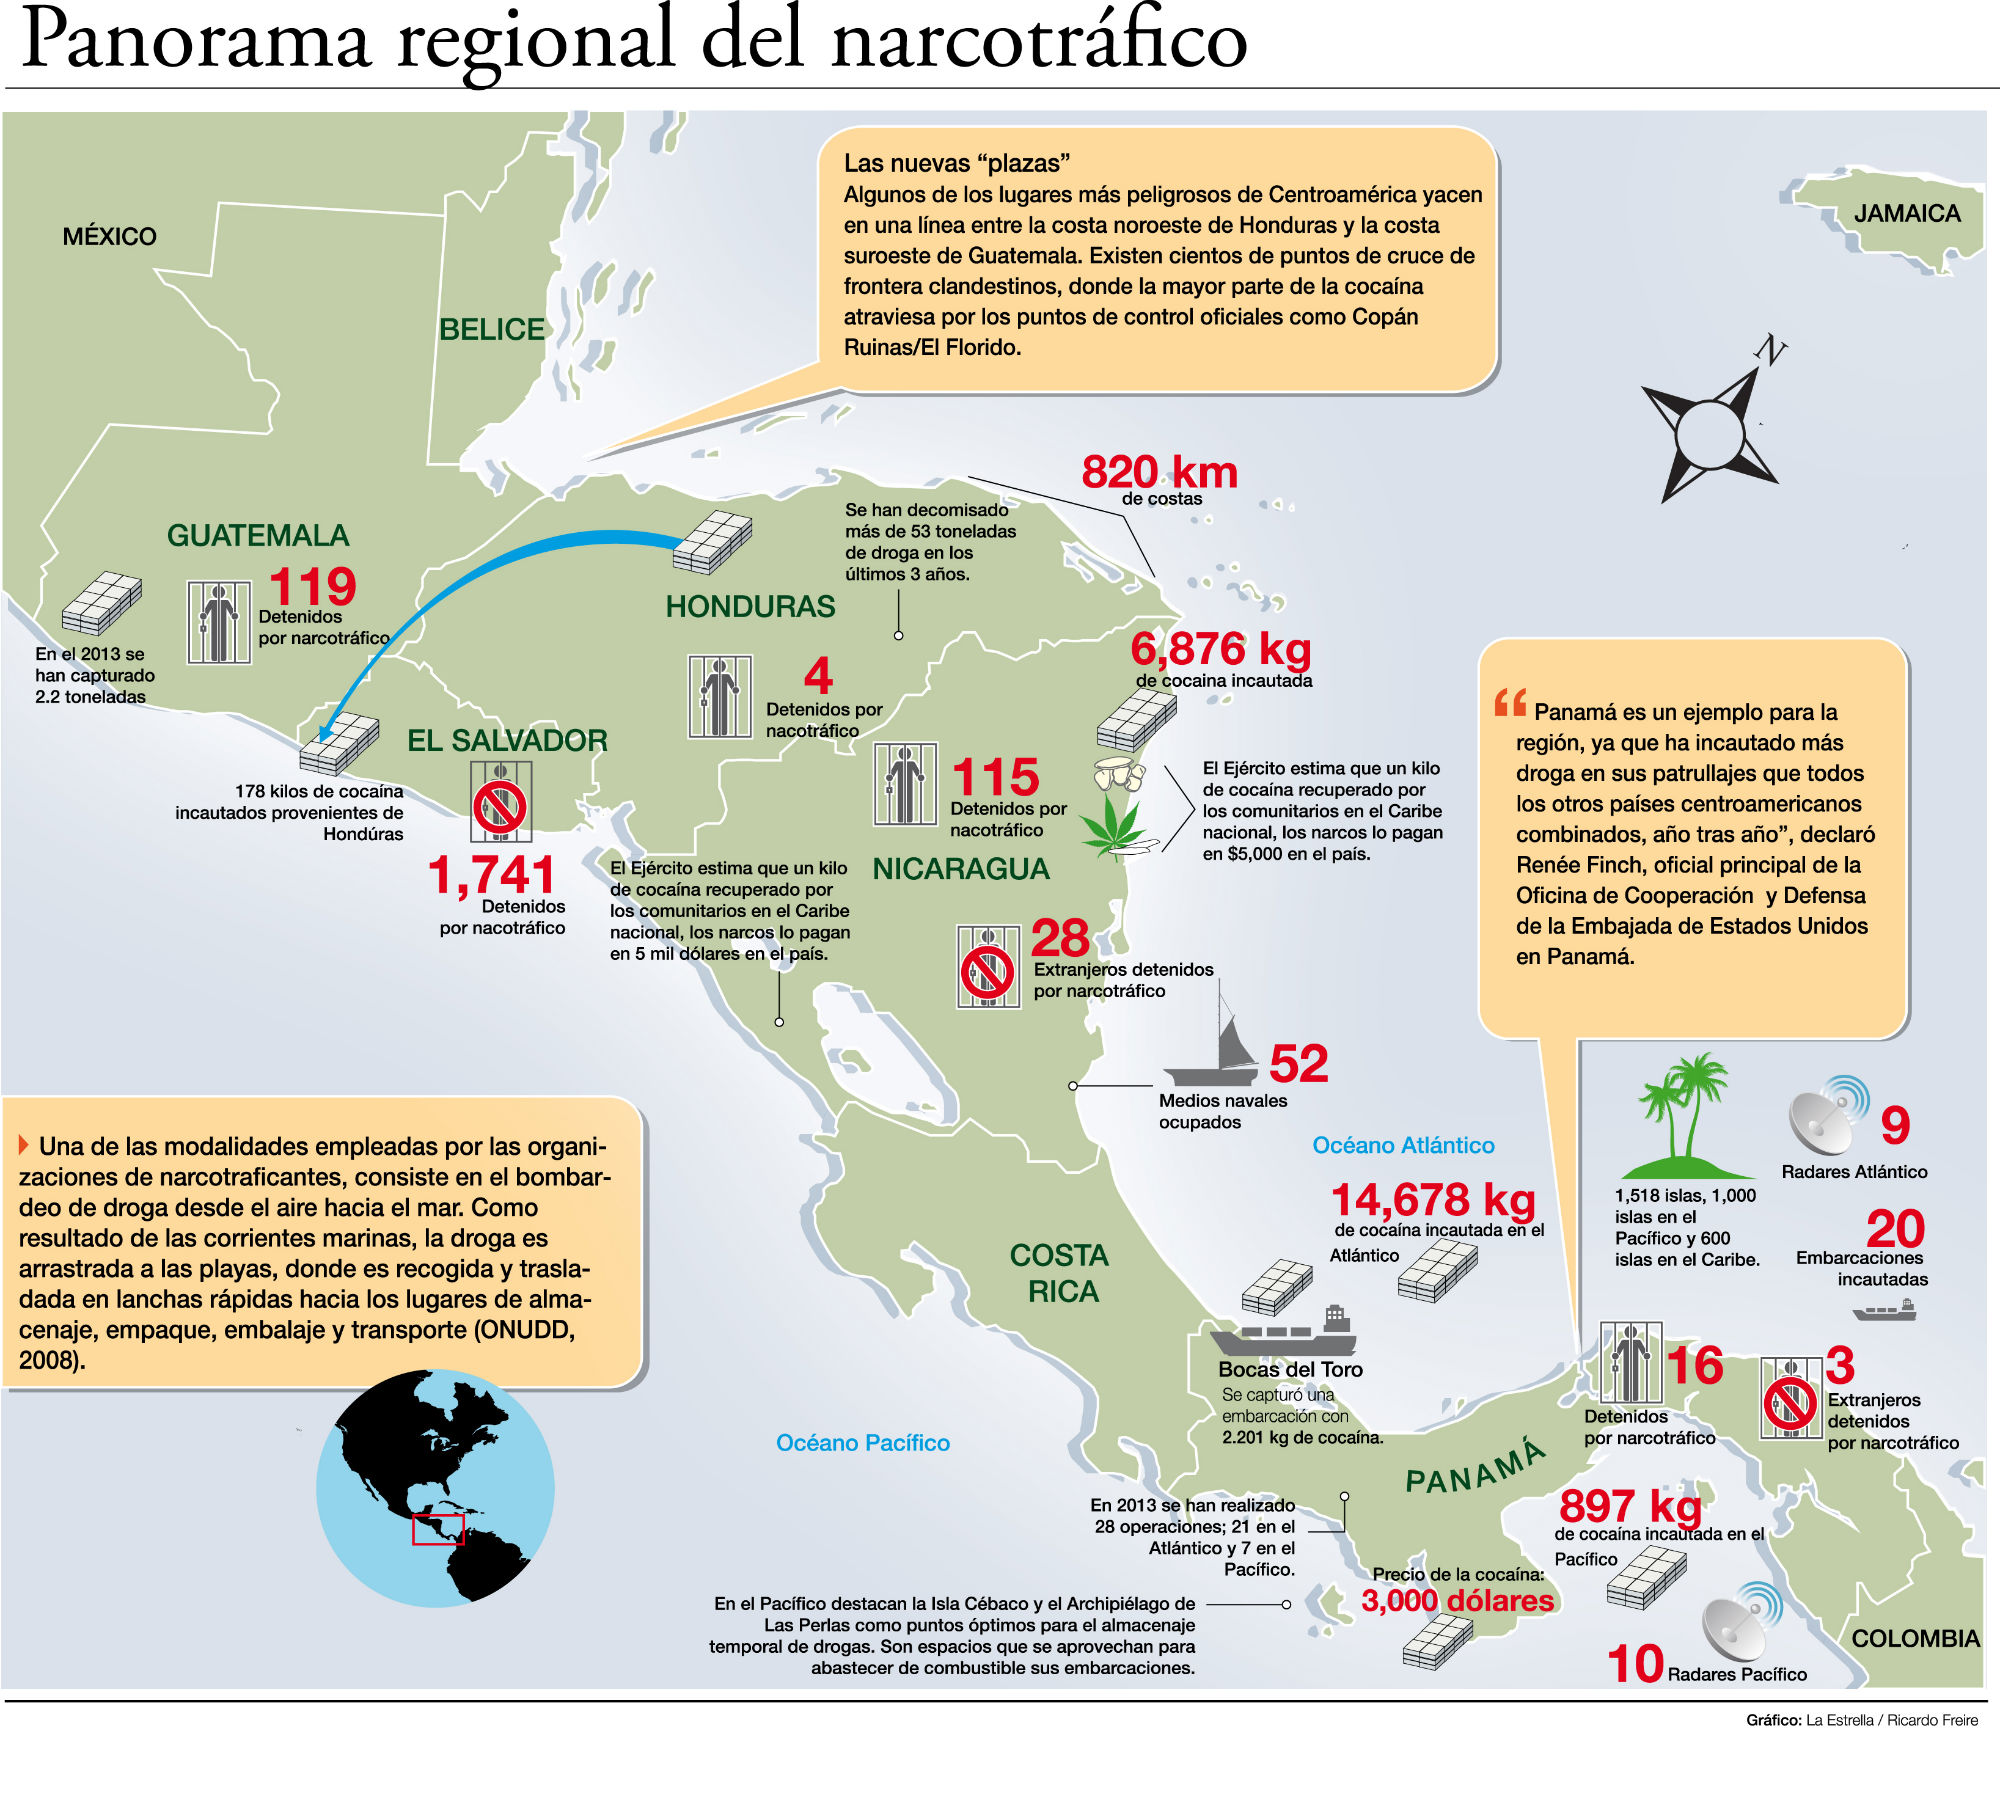 Narco-Islands: The Honduras-Belize Tourist Bridge | TODAY NICARAGUA NEWS